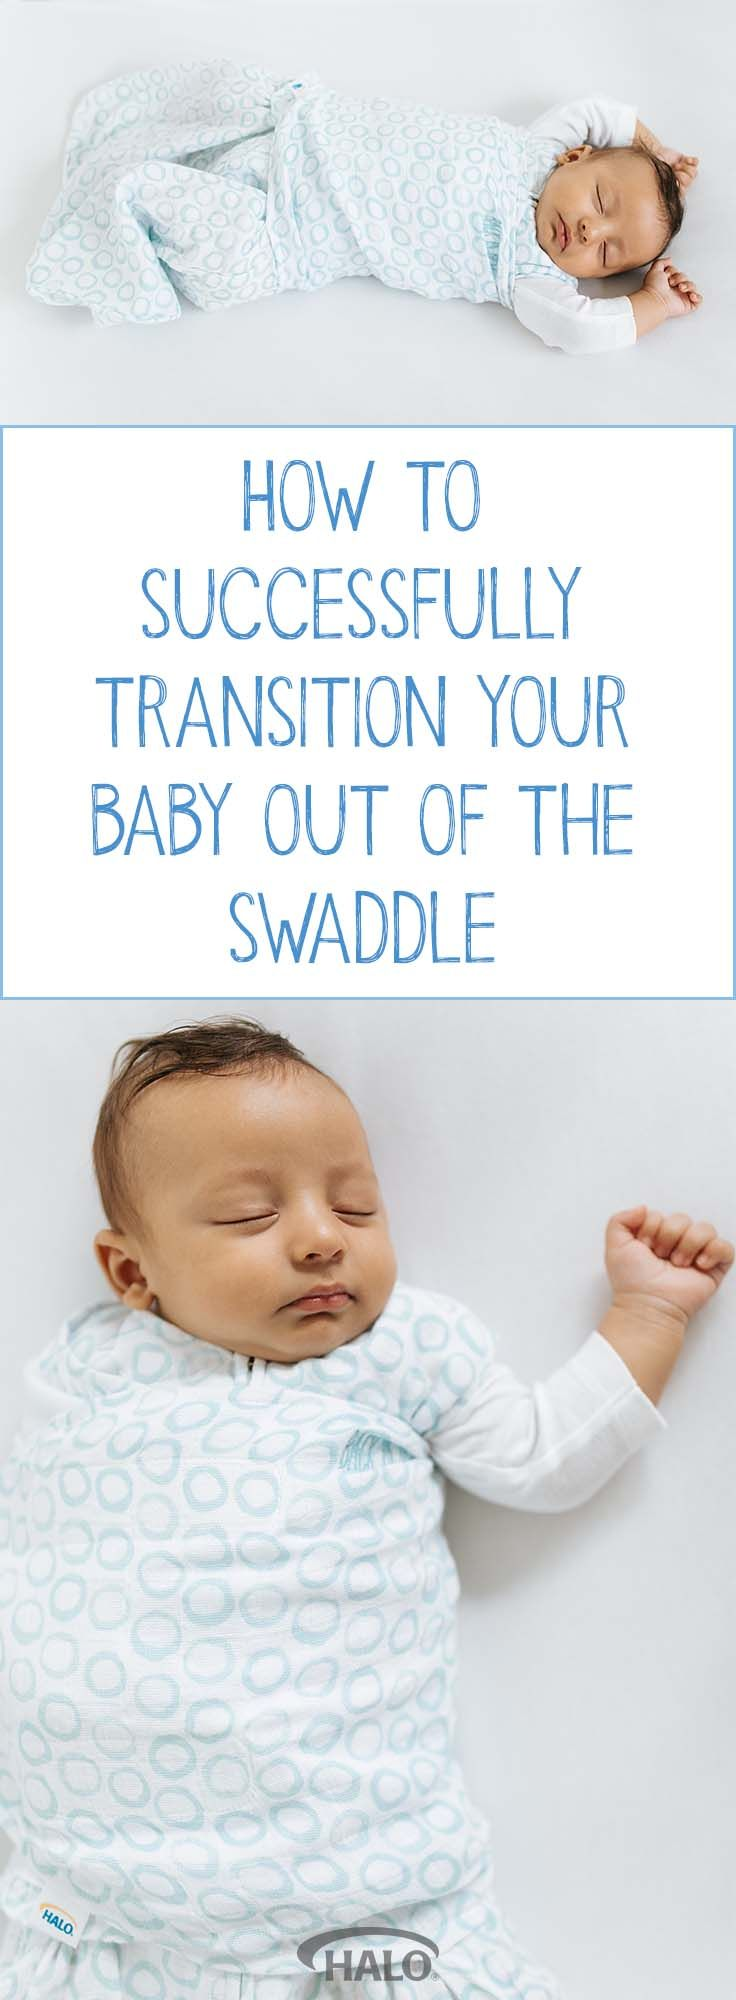 How to transition your baby out of the swaddle using the HALO SleepSack swaddle wearable blanket.